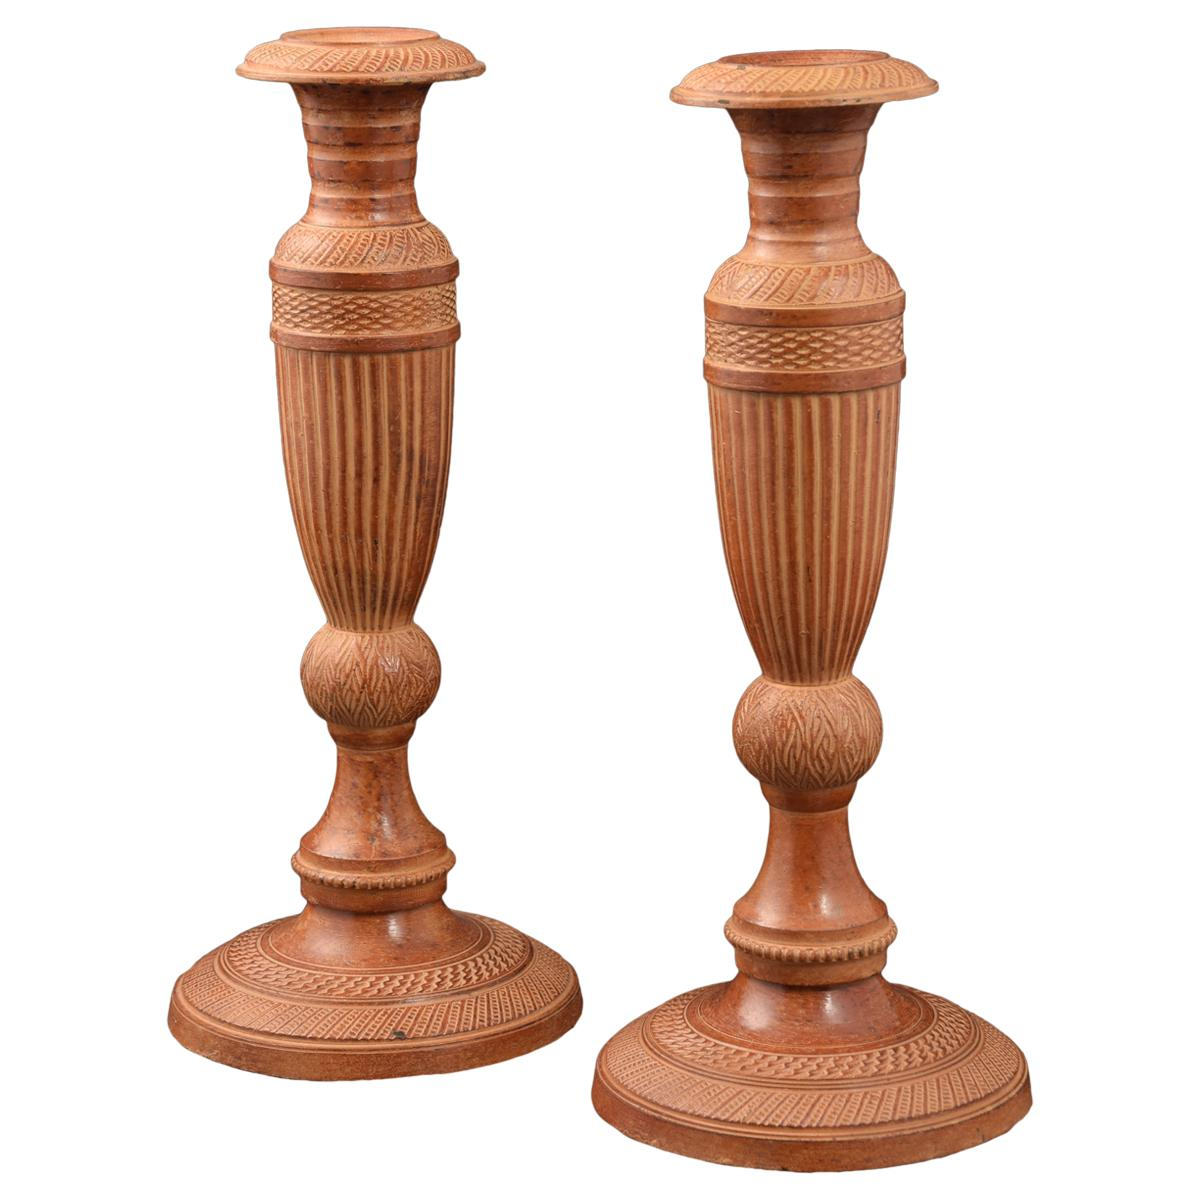 Pair of Candlesticks or Candleholders, Patinated Bronze